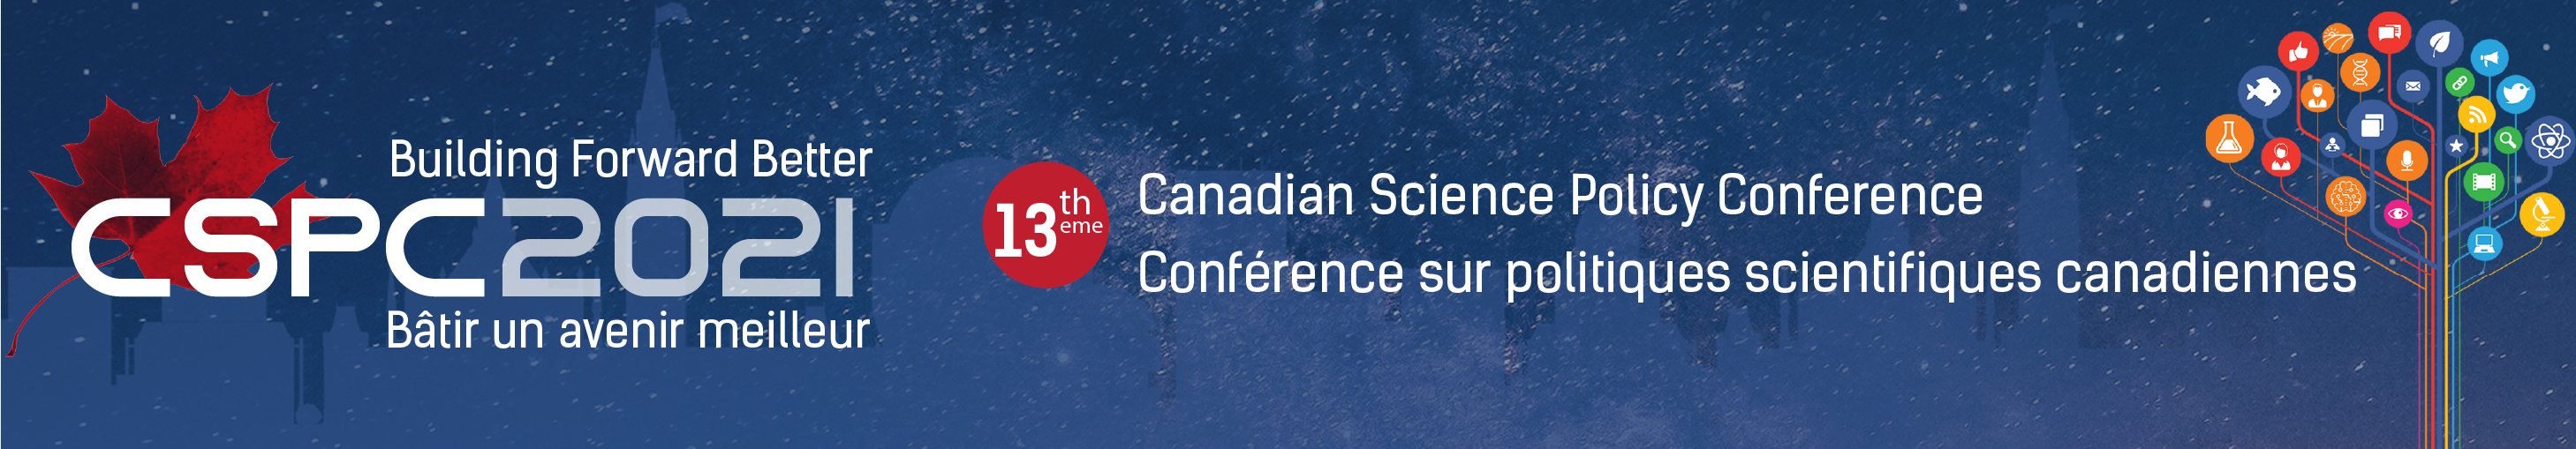 "Banner for the CSPC 2021 conference with a starry night background and the works ""Building Forward Better - 13th Canadian Science Policy Conference'"